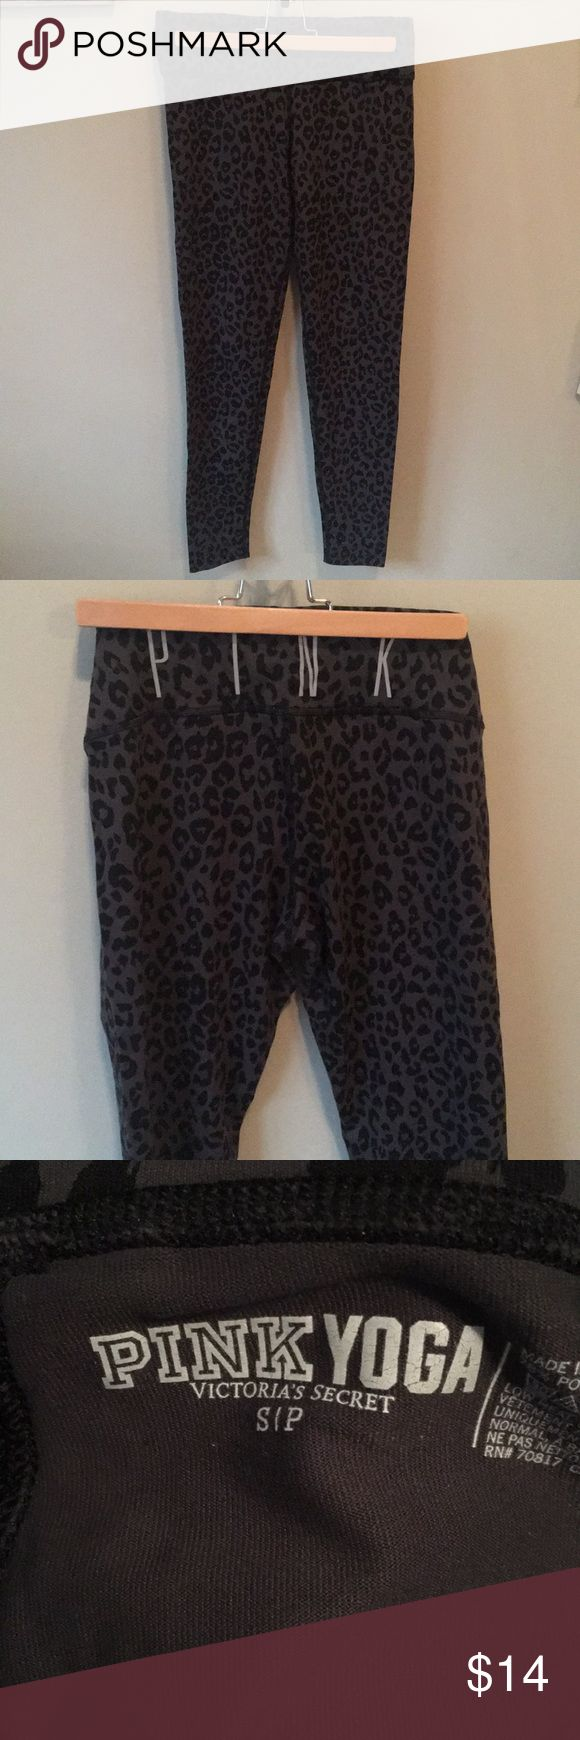 Victoria's Secret Pink Leopard Print Leggings, S Victoria's Secret Pink Black and Gray Leopard Print Yoga Leggings, Size Small. Show small amount of wear in between legs. Only worn a few times. PINK Victoria's Secret Pants Leggings